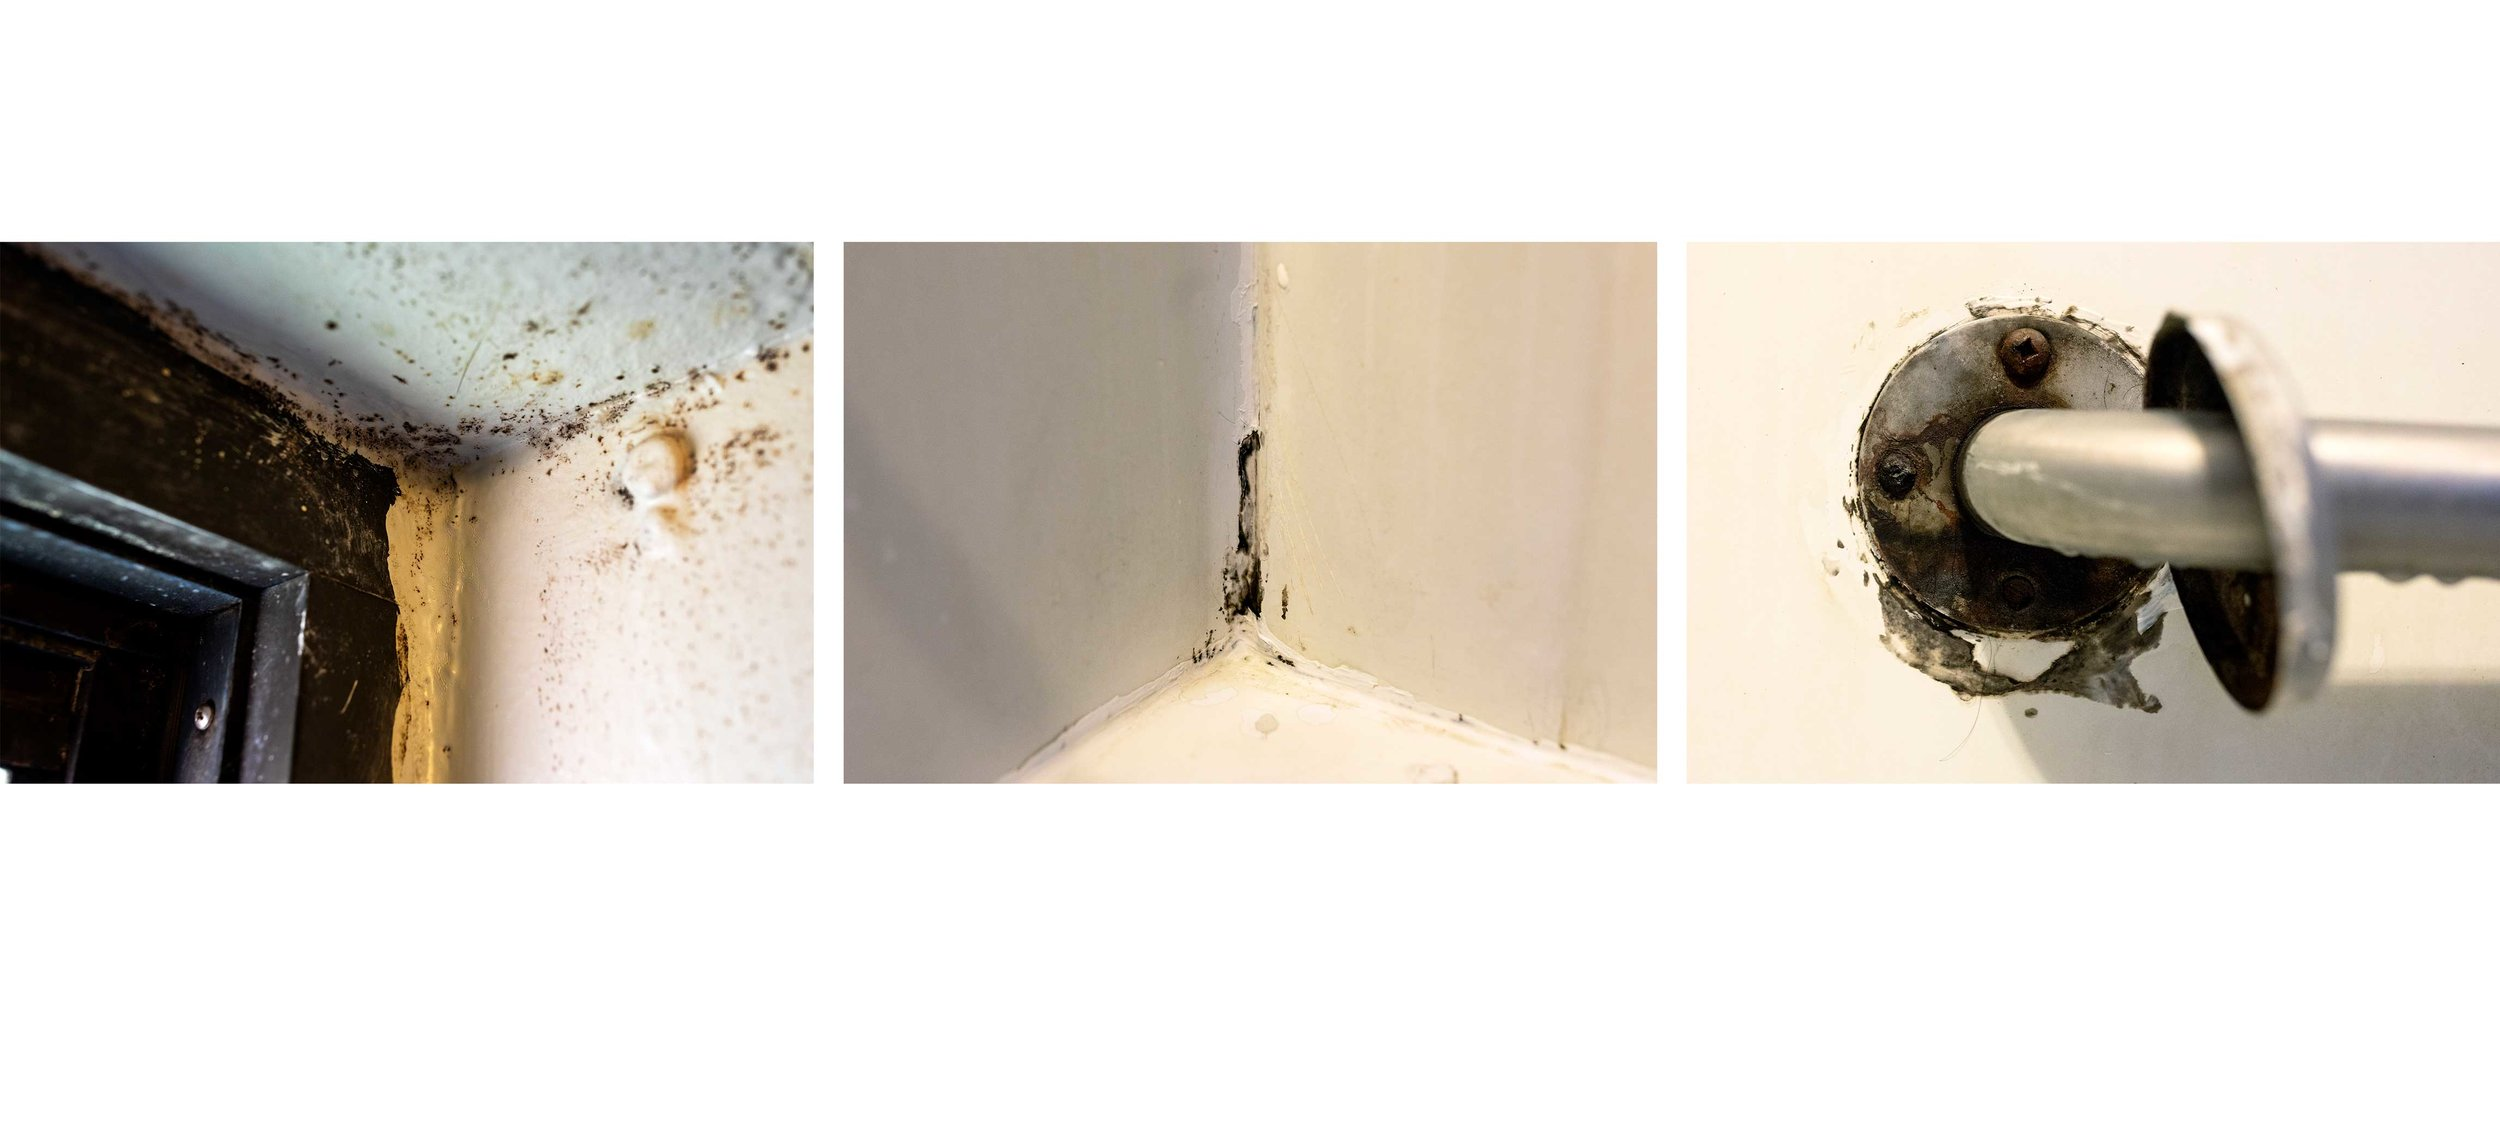 Details of damage in Garcia's apartment show mold on the walls and peeling paint.